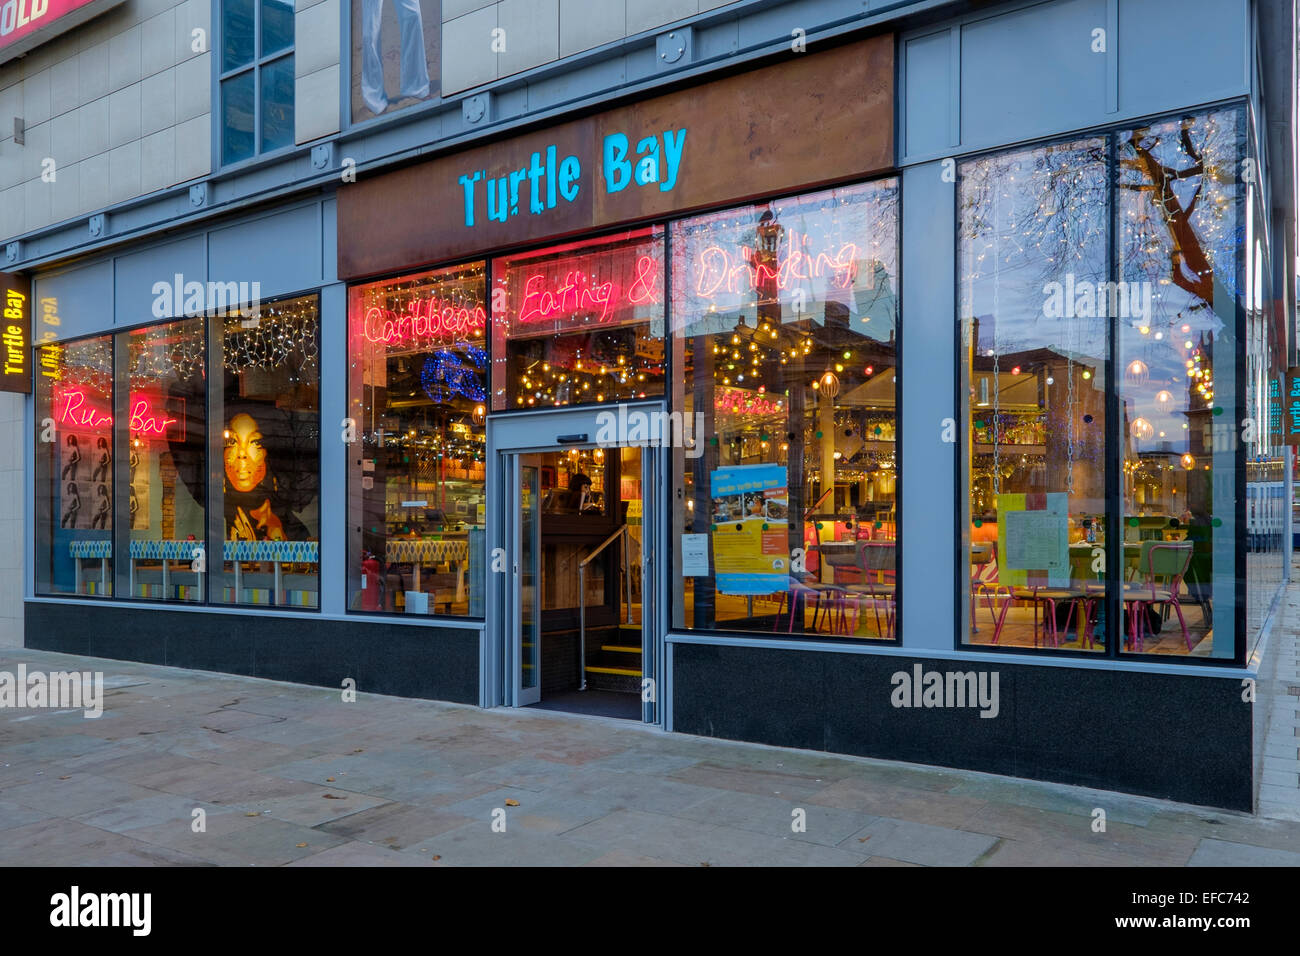 Turtle Bay Restaurant Preston - Stock Image